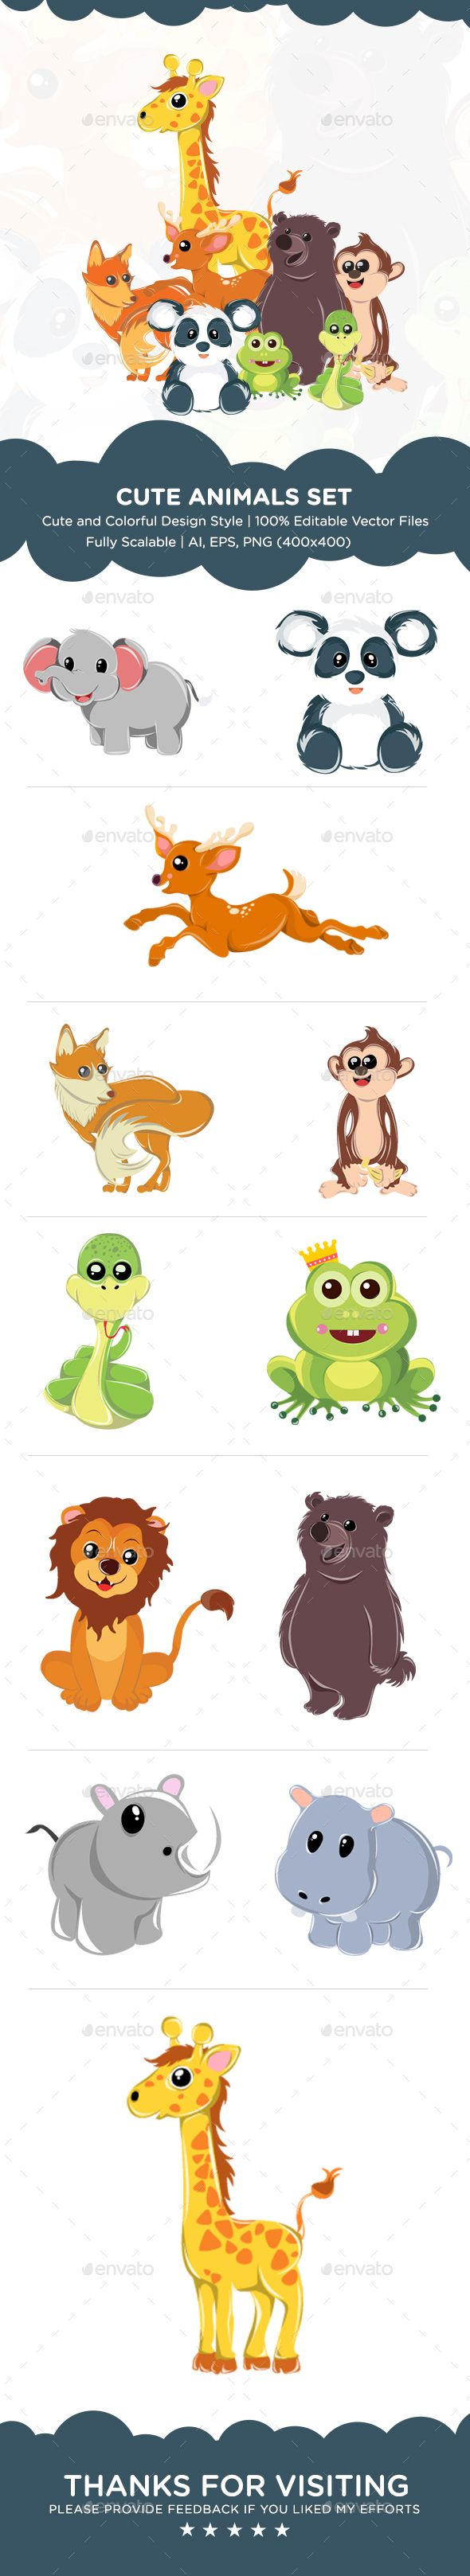 best 25 cute cartoon animals ideas on pinterest cute cartoon